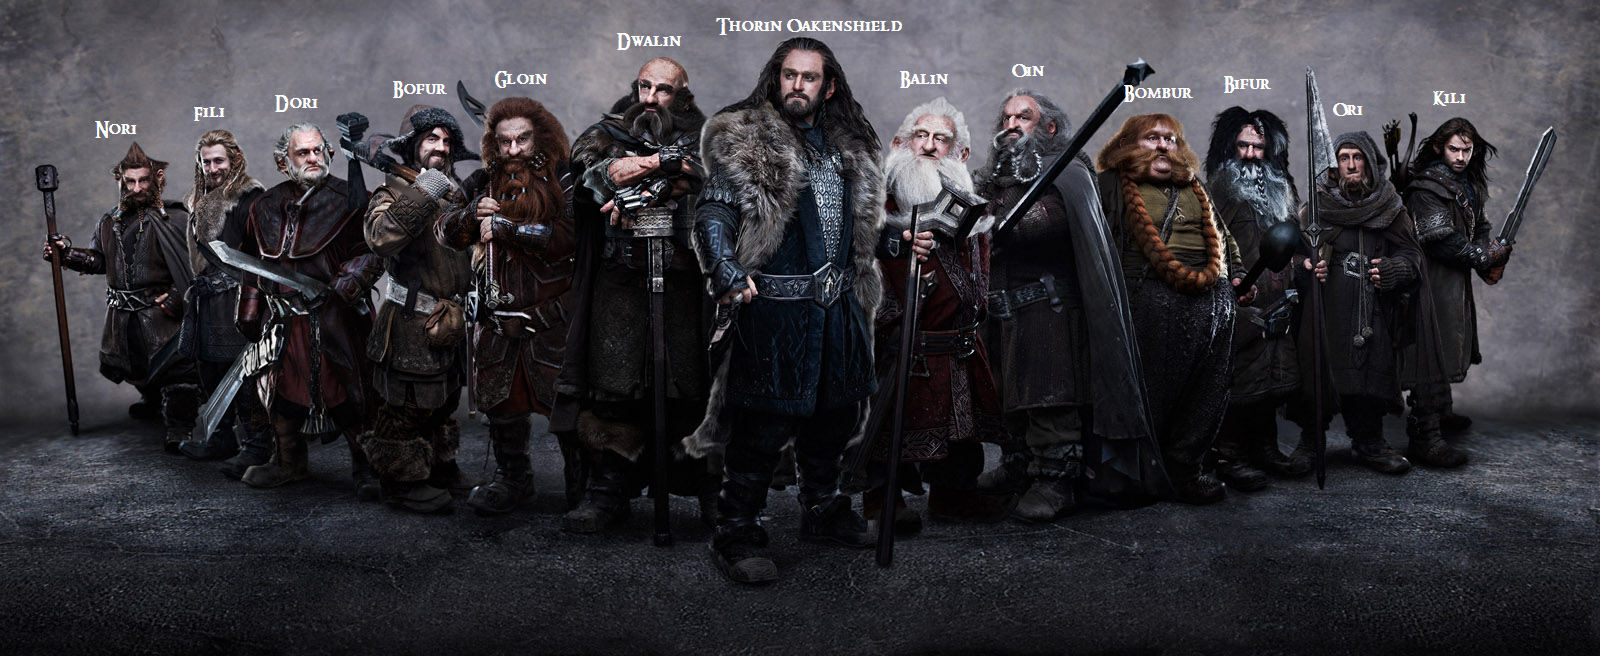 Thorin and Company  The One Wiki to Rule Them All  FANDOM